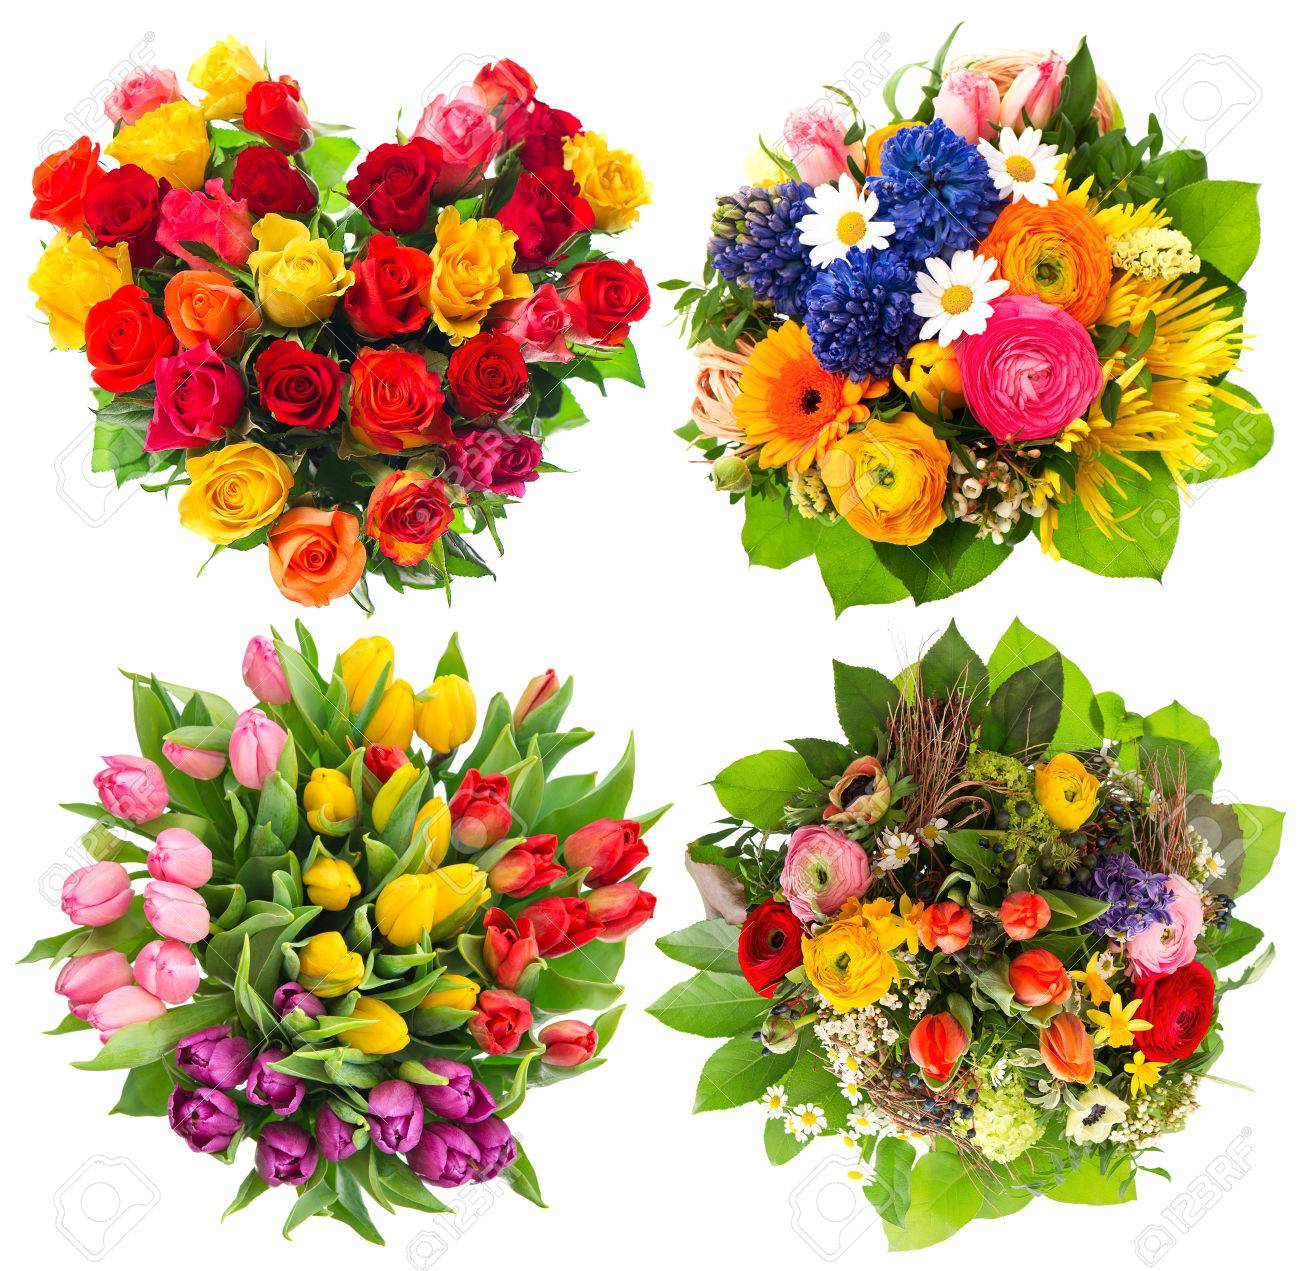 Flower bouquets for birthday valentines day mothers day easter flower bouquets for birthday valentines day mothers day easter top view of four izmirmasajfo